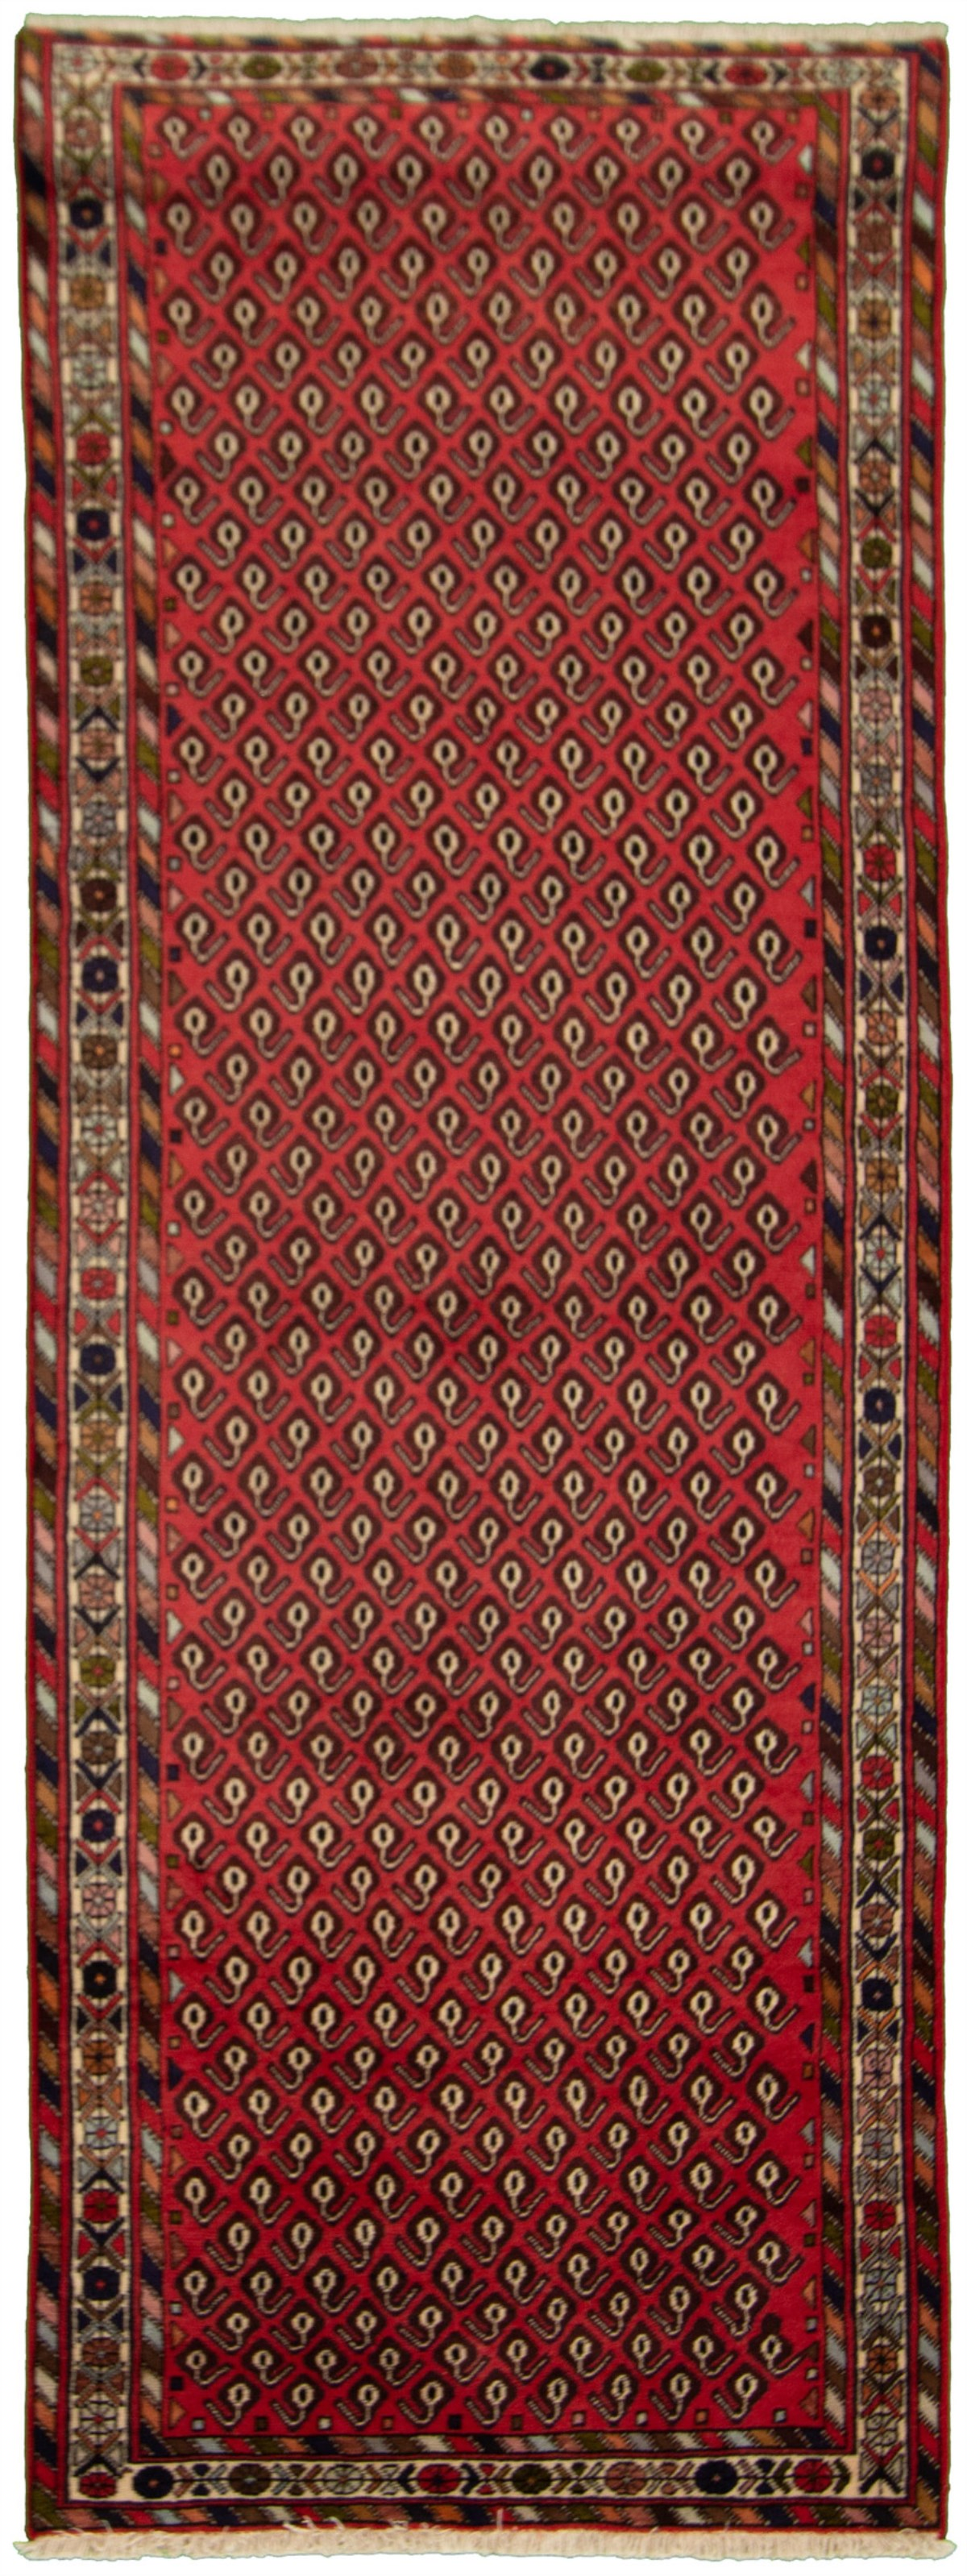 """Hand-knotted Afshar Red Wool Rug 3'3"""" x 9'0"""" Size: 3'3"""" x 9'0"""""""